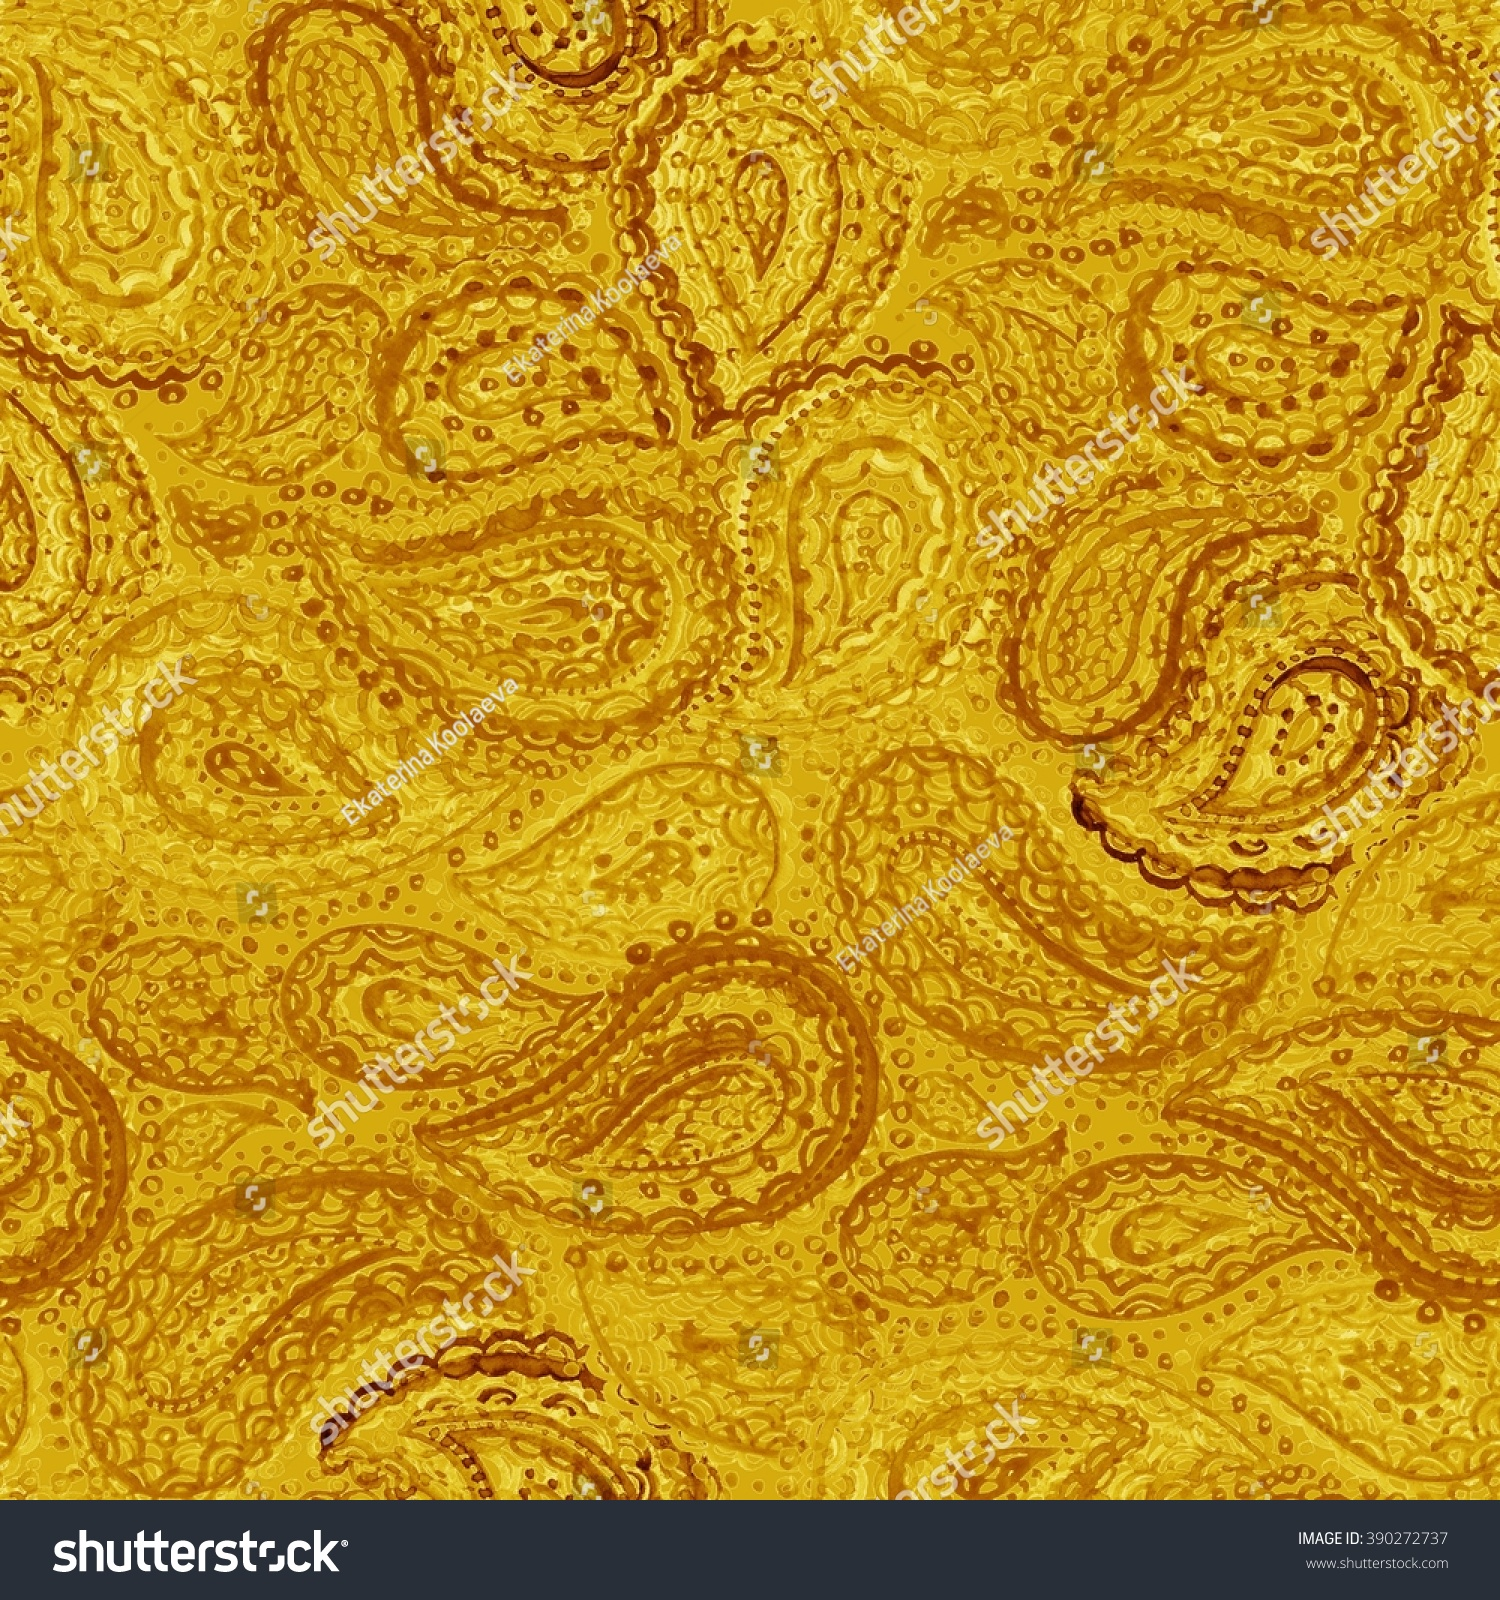 Gold Paisley Pattern Watercolor Ornate Floral Seamless Textile Wallpaper In Colorful Indian Style